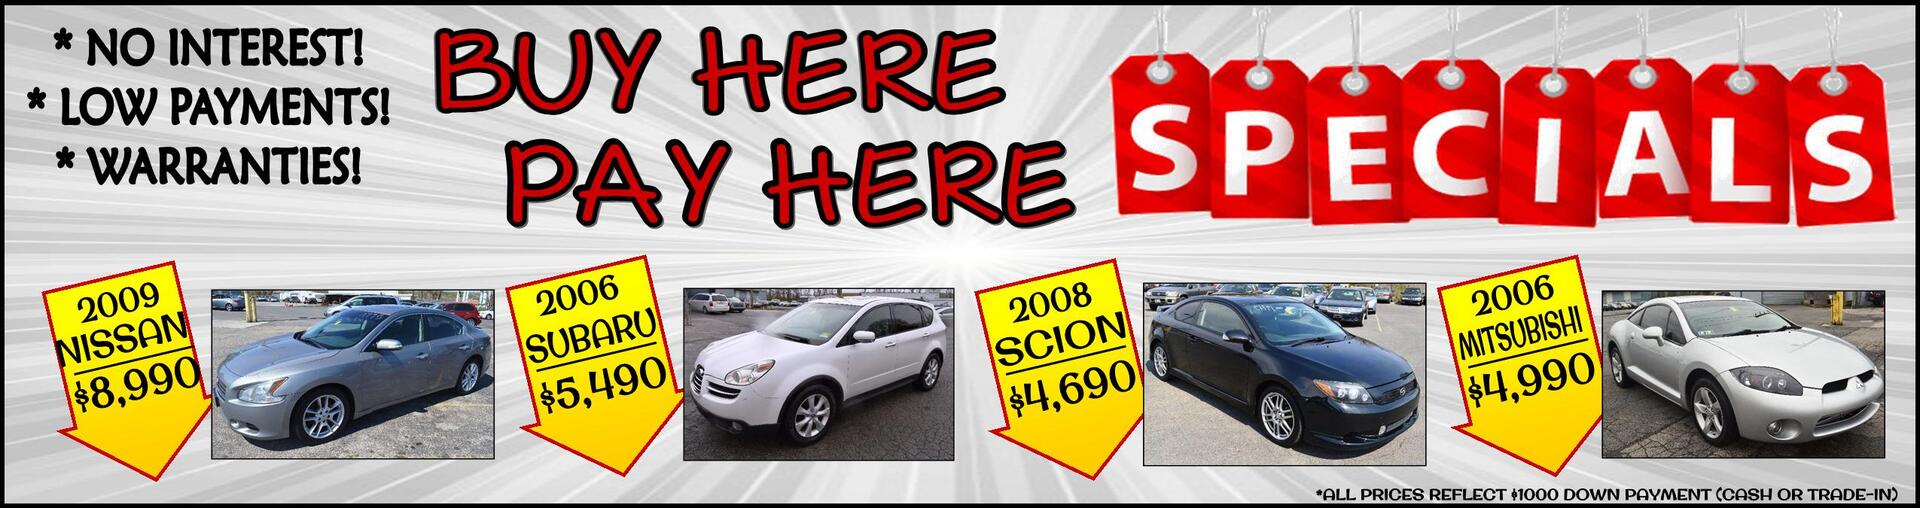 Dealership New Castle DE | Used Cars Delaware Public Auto Auction